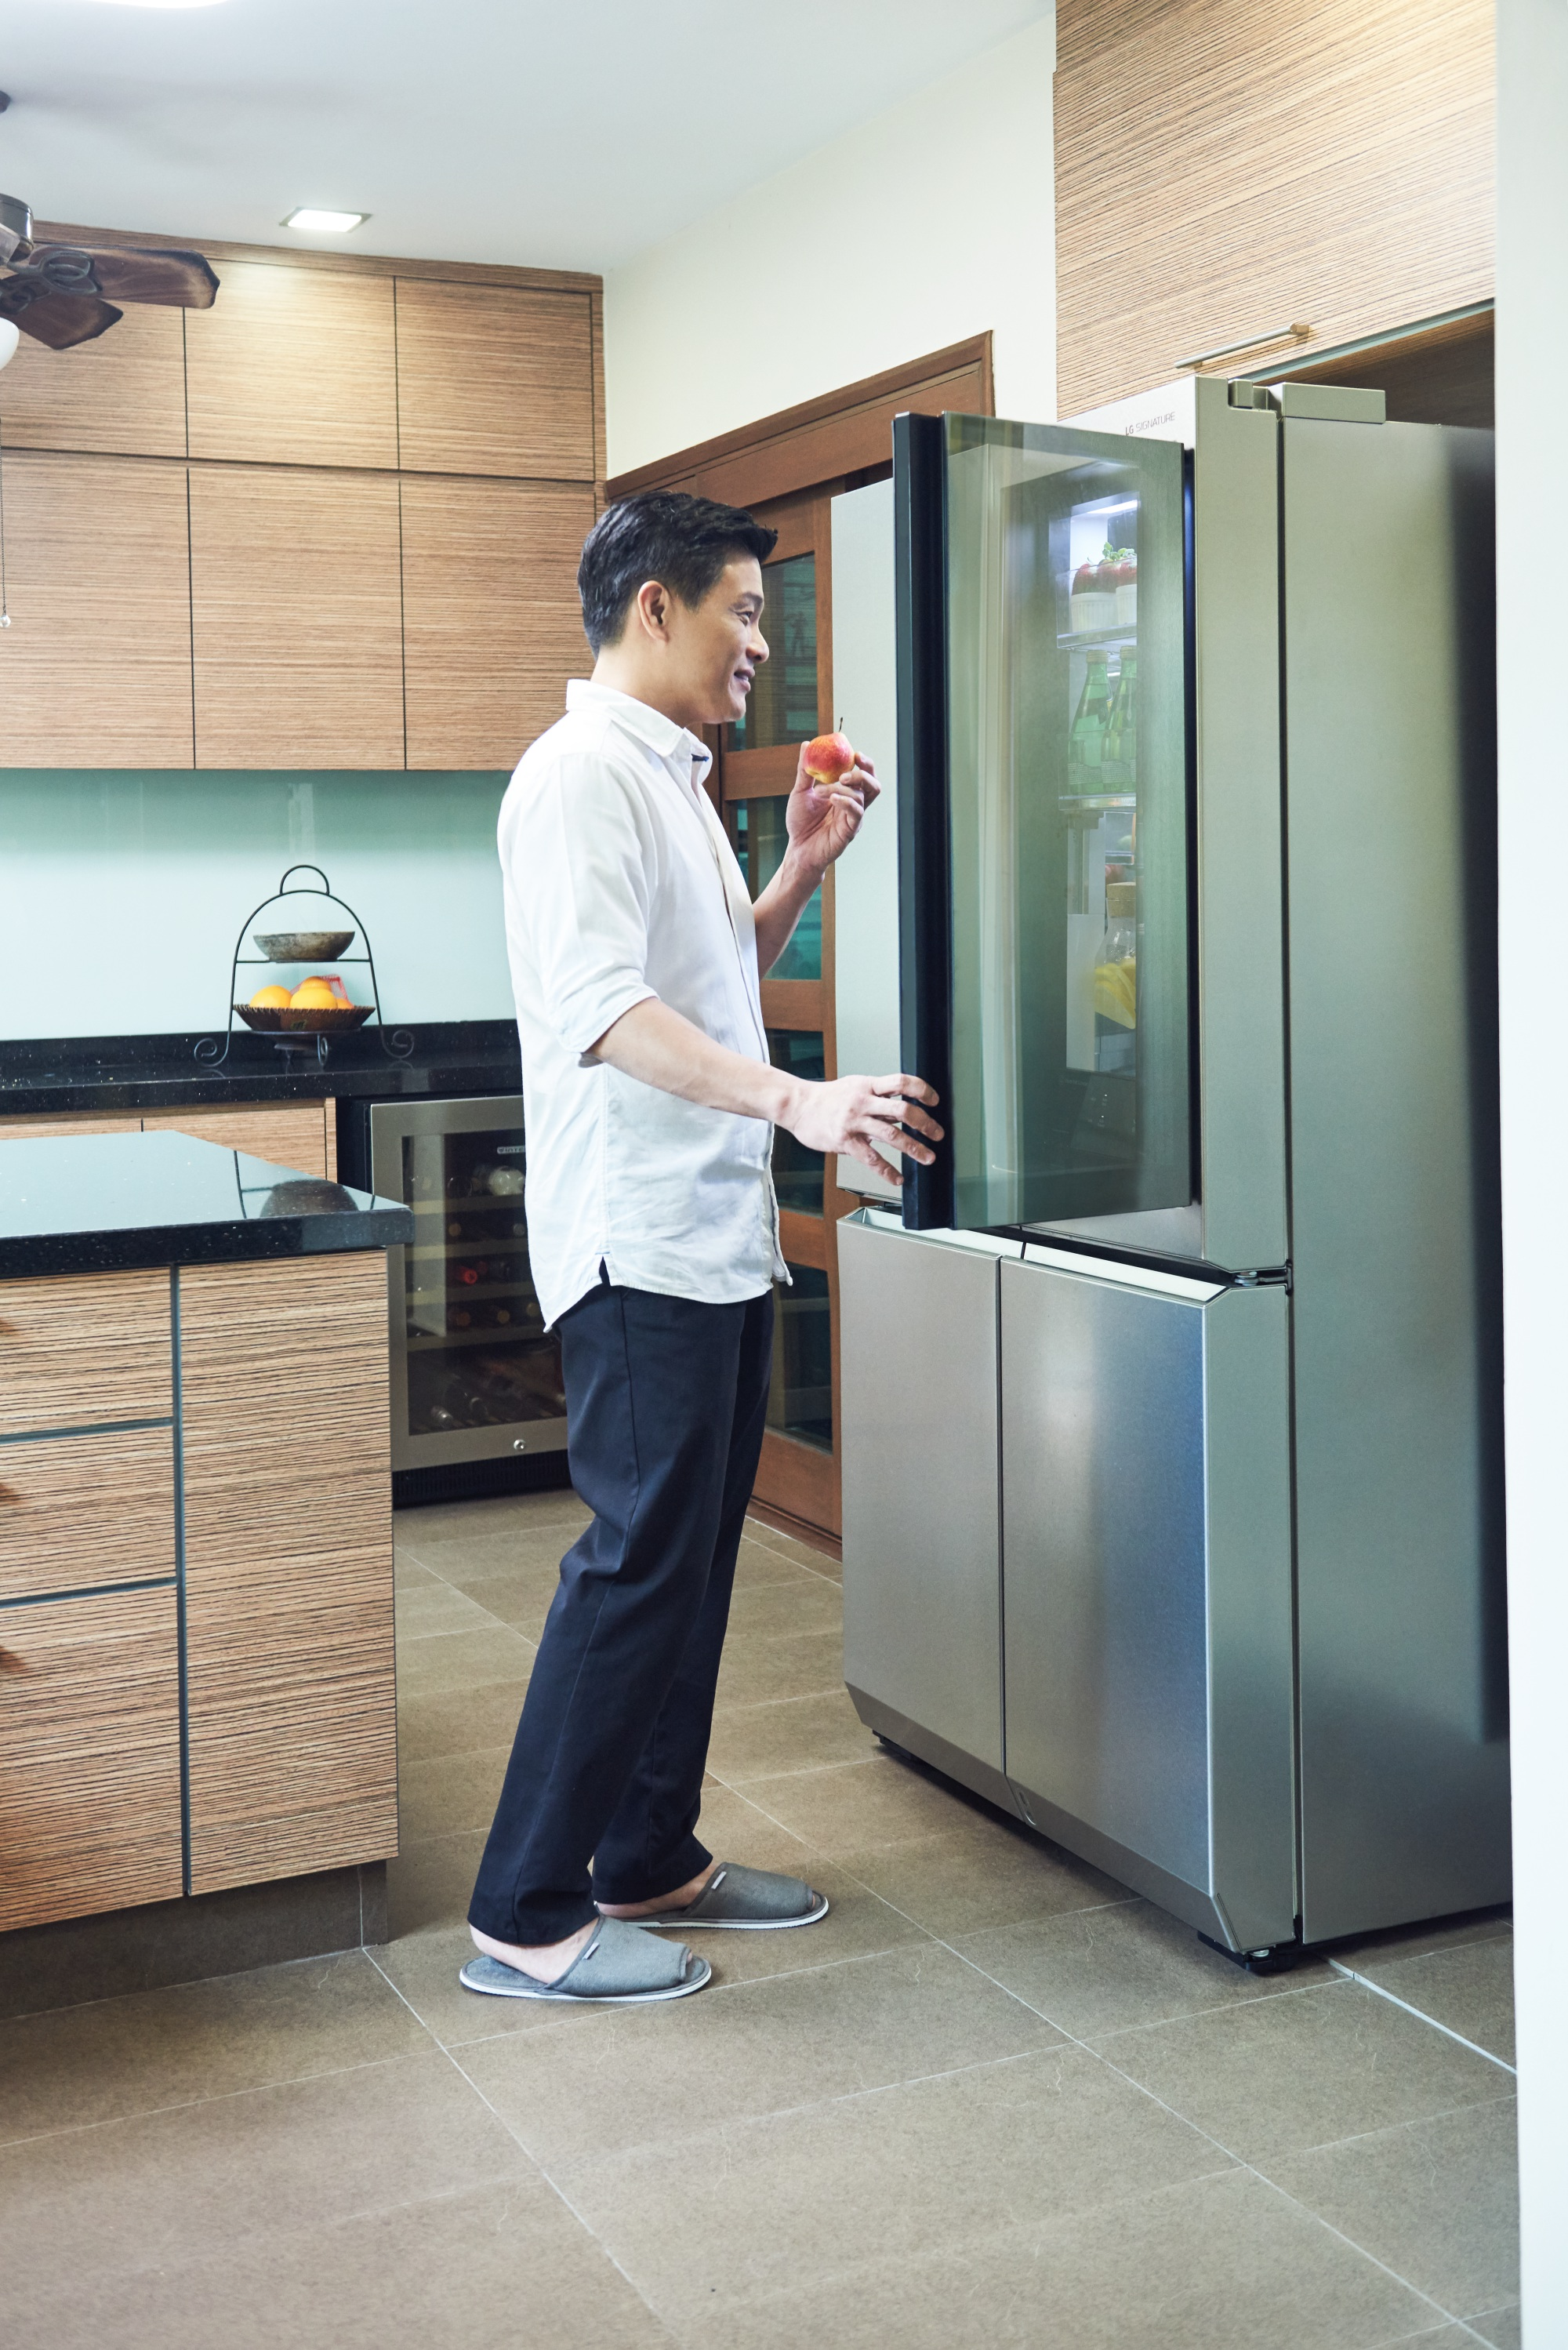 Dr Leslie Tay LG SIGNATURE refrigerator